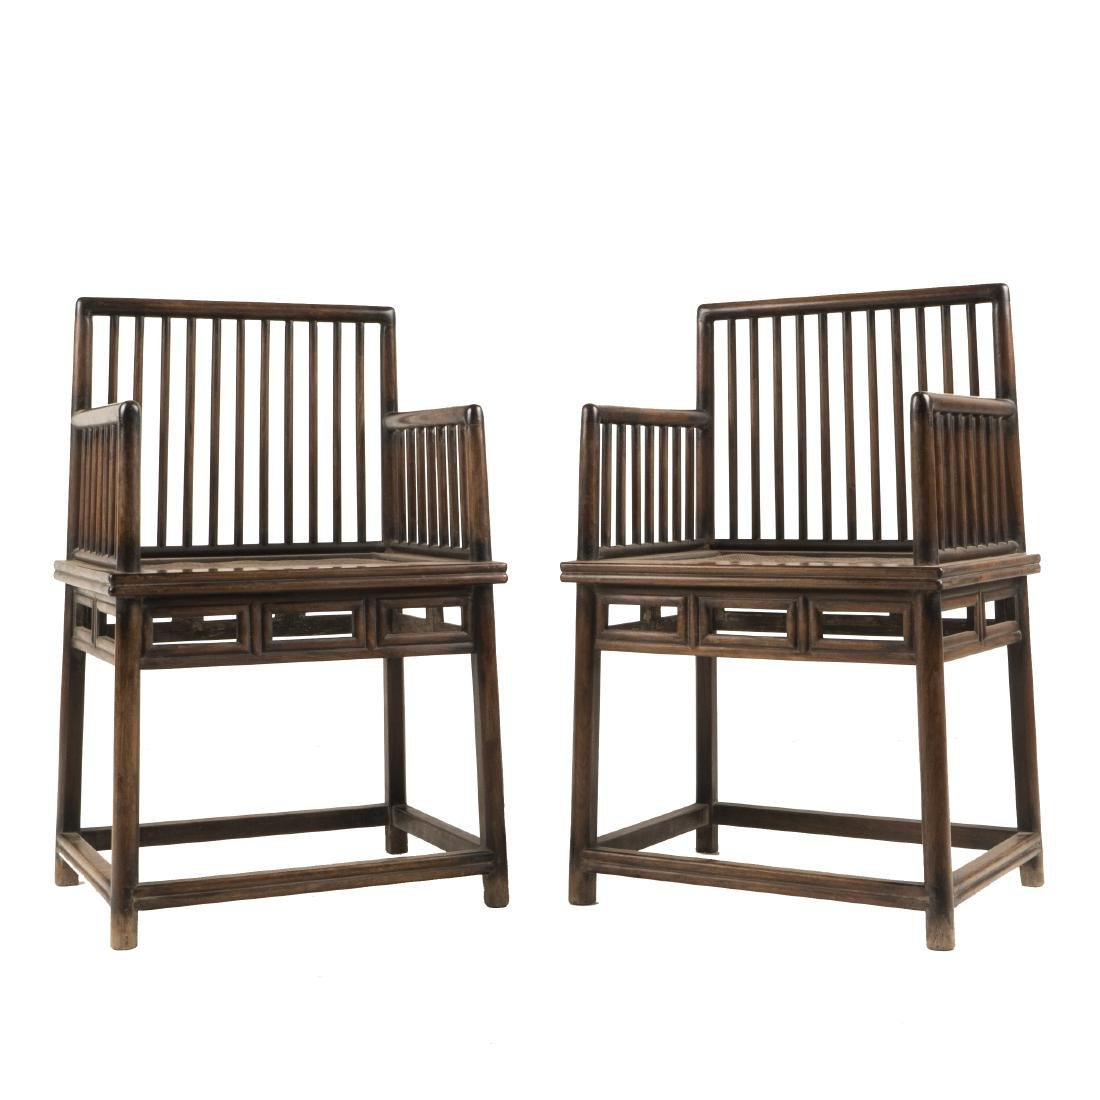 PAIR OF 18TH C CHINESE HUANGHUALI WAISTED ARMCHAIRS